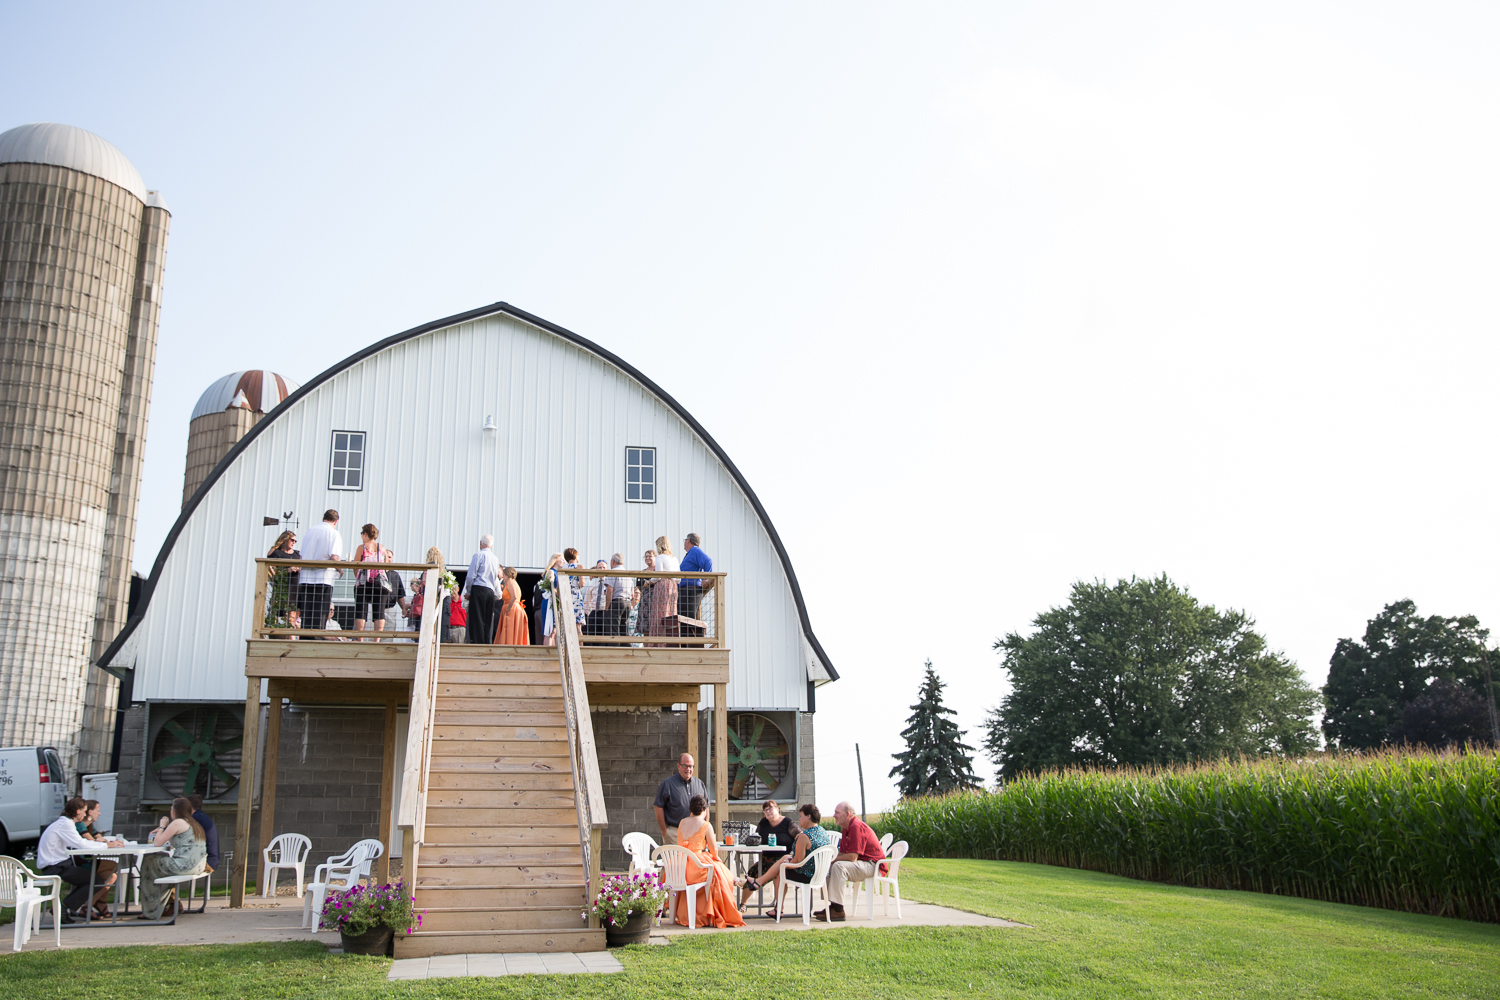 Farmview Event Barn Wedding in Berlin Wisconsin  - Whit Meza Photography